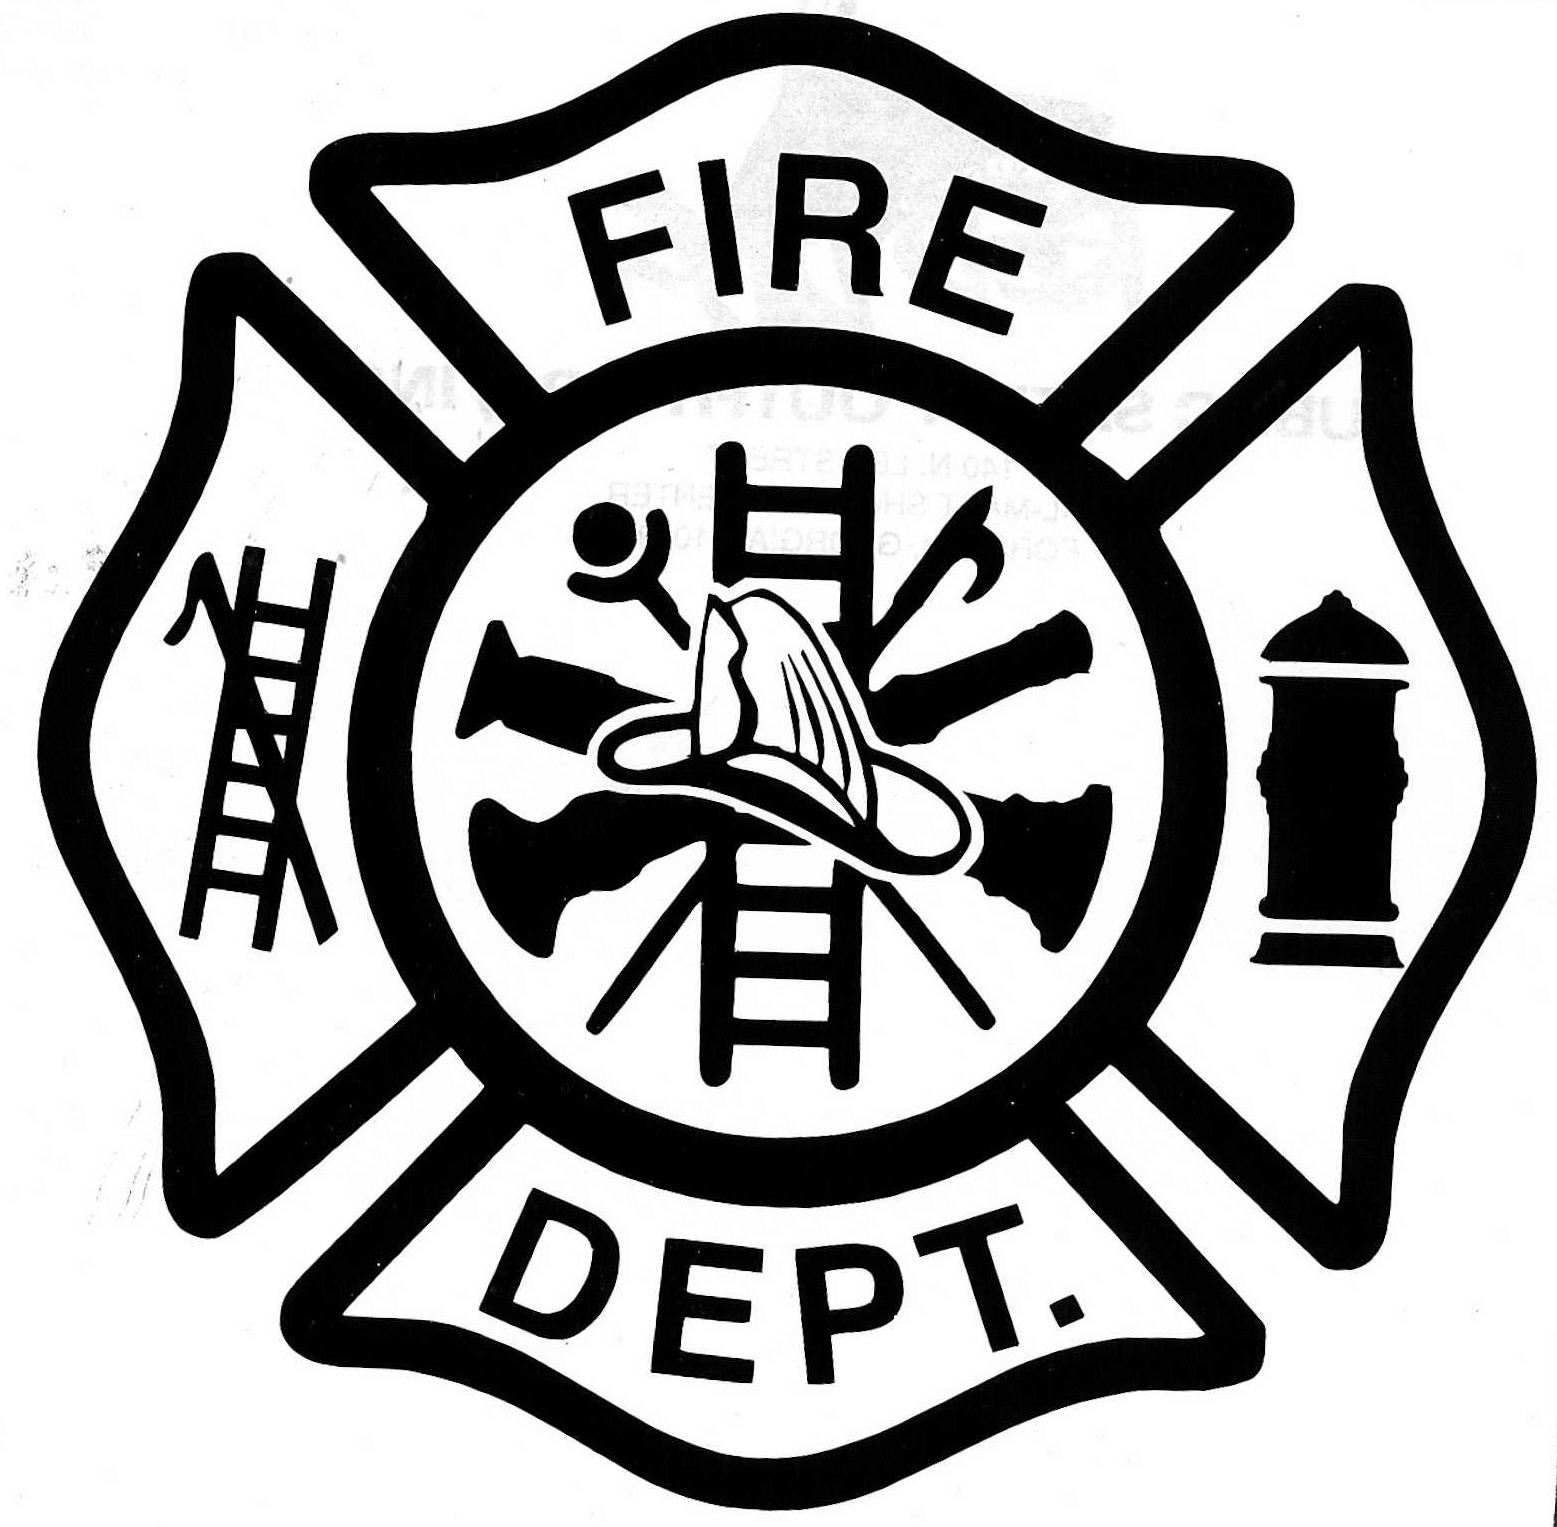 Fire Department Badge Clipart (10+) pertaining to Fire Department.